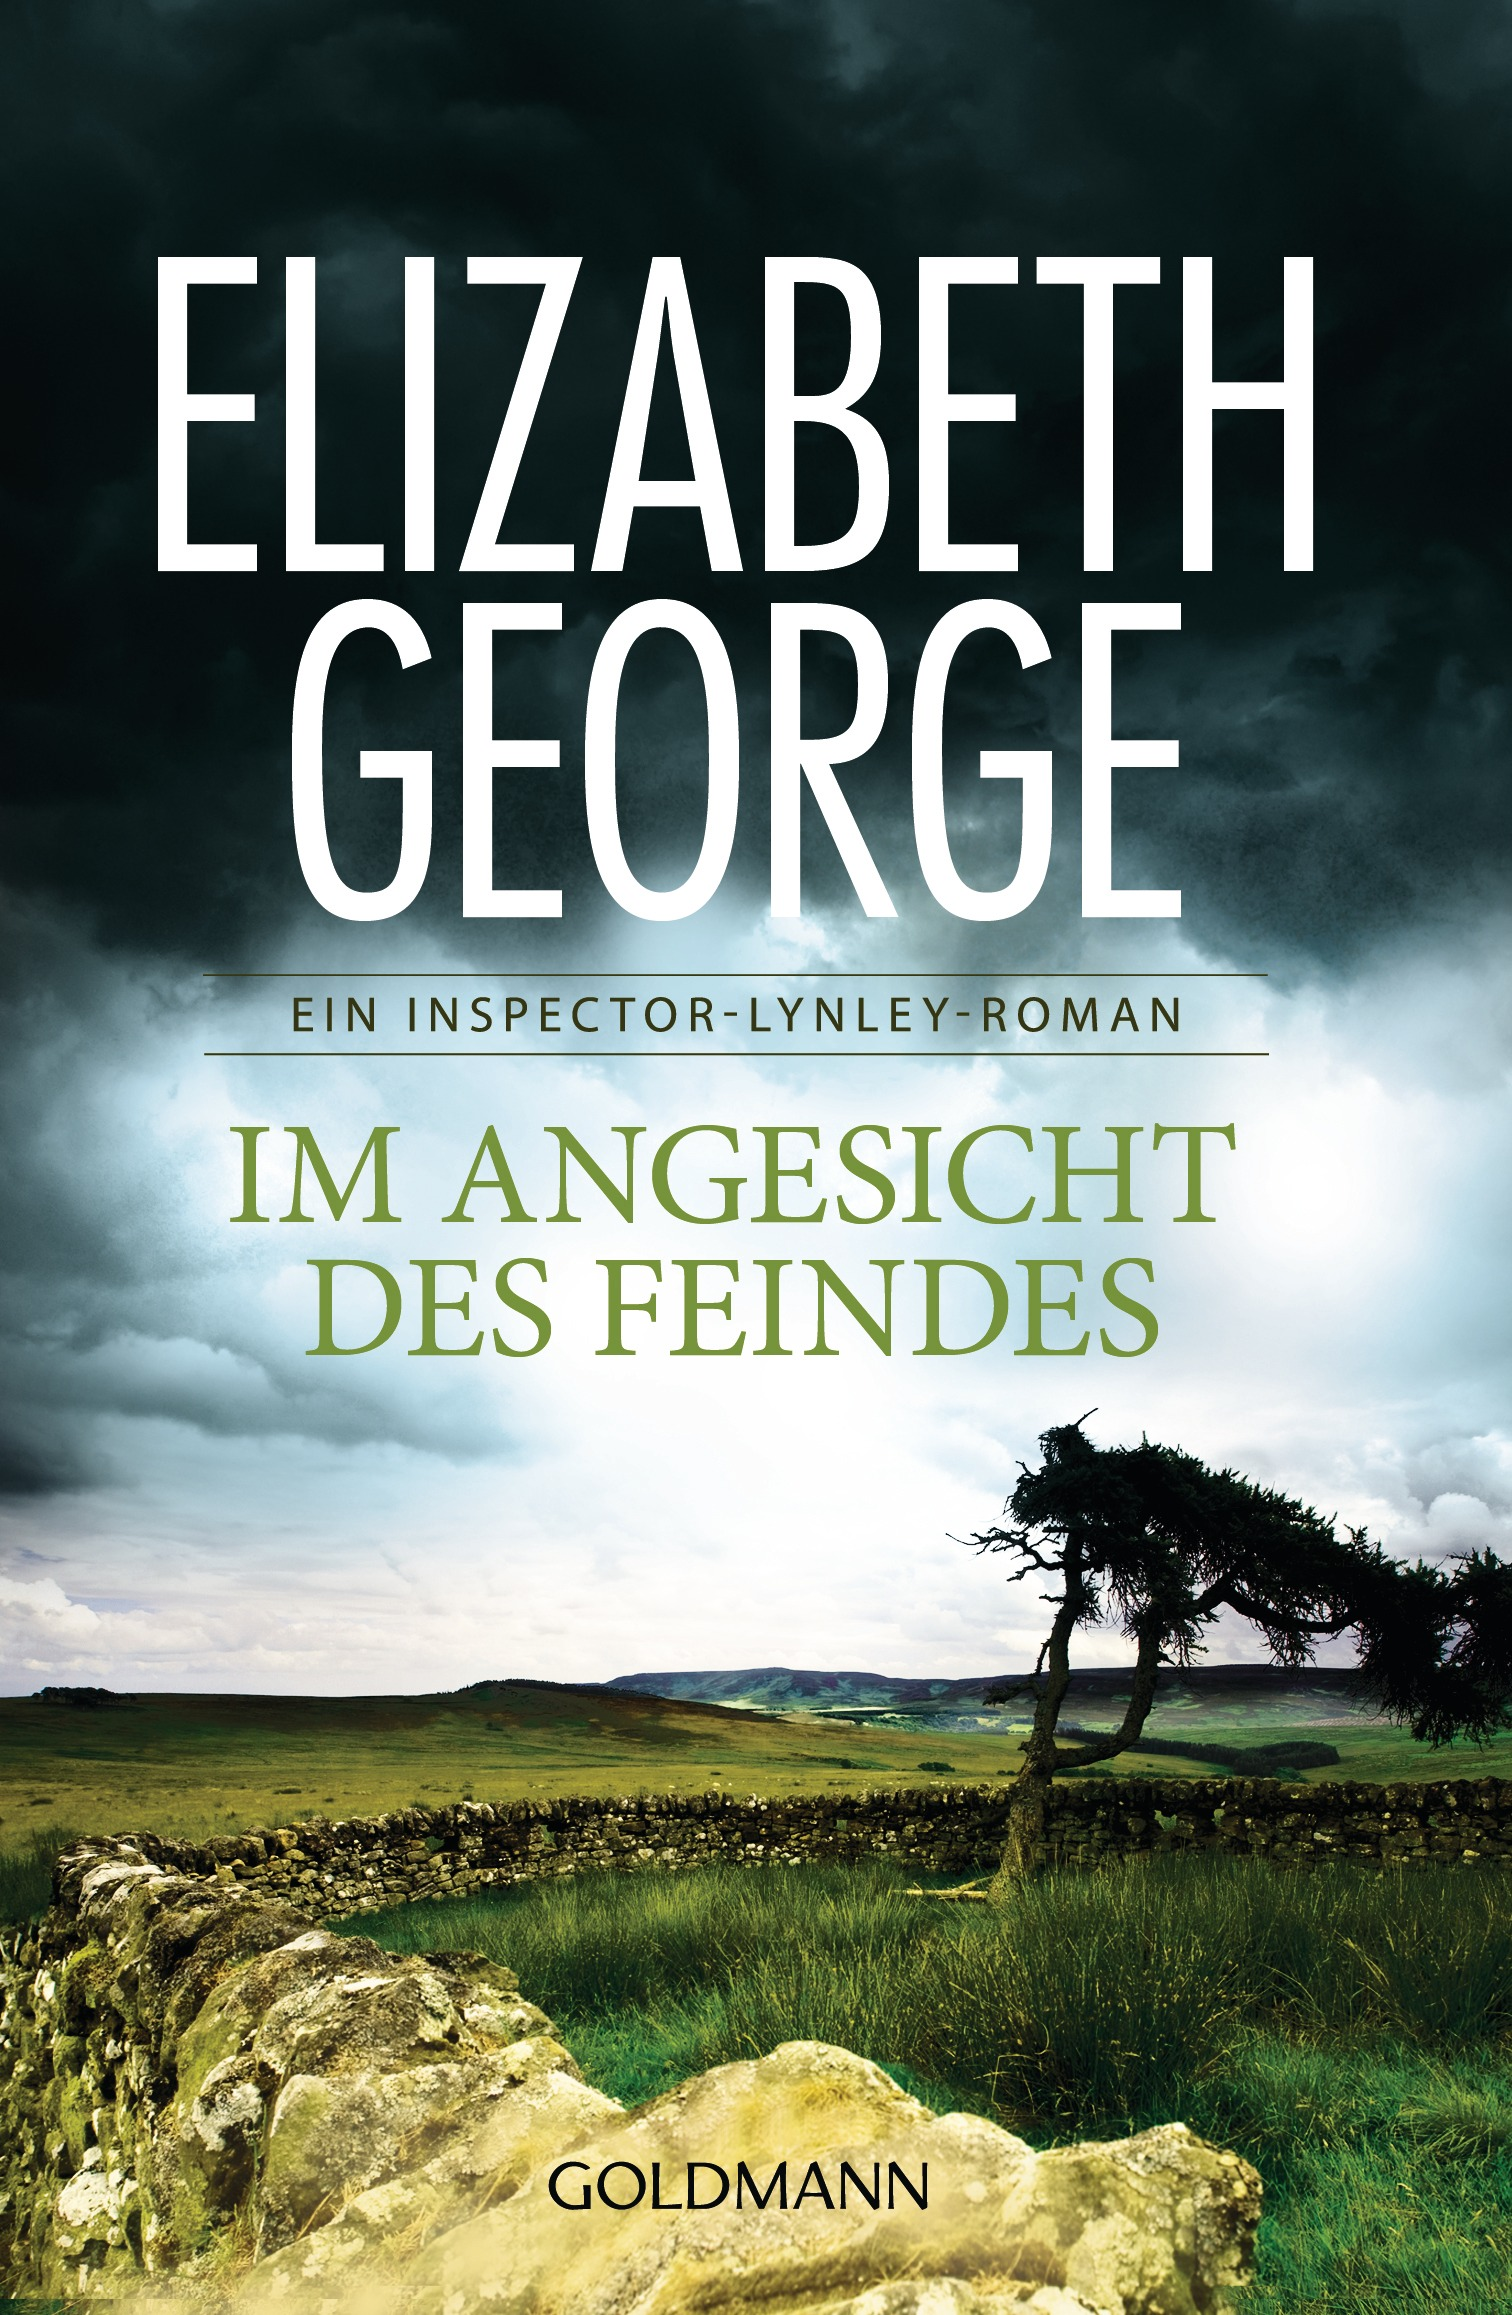 https://www.randomhouse.de/content/edition/covervoila_hires/George_EIm_Angesicht_des_Feindes_8_147588.jpg